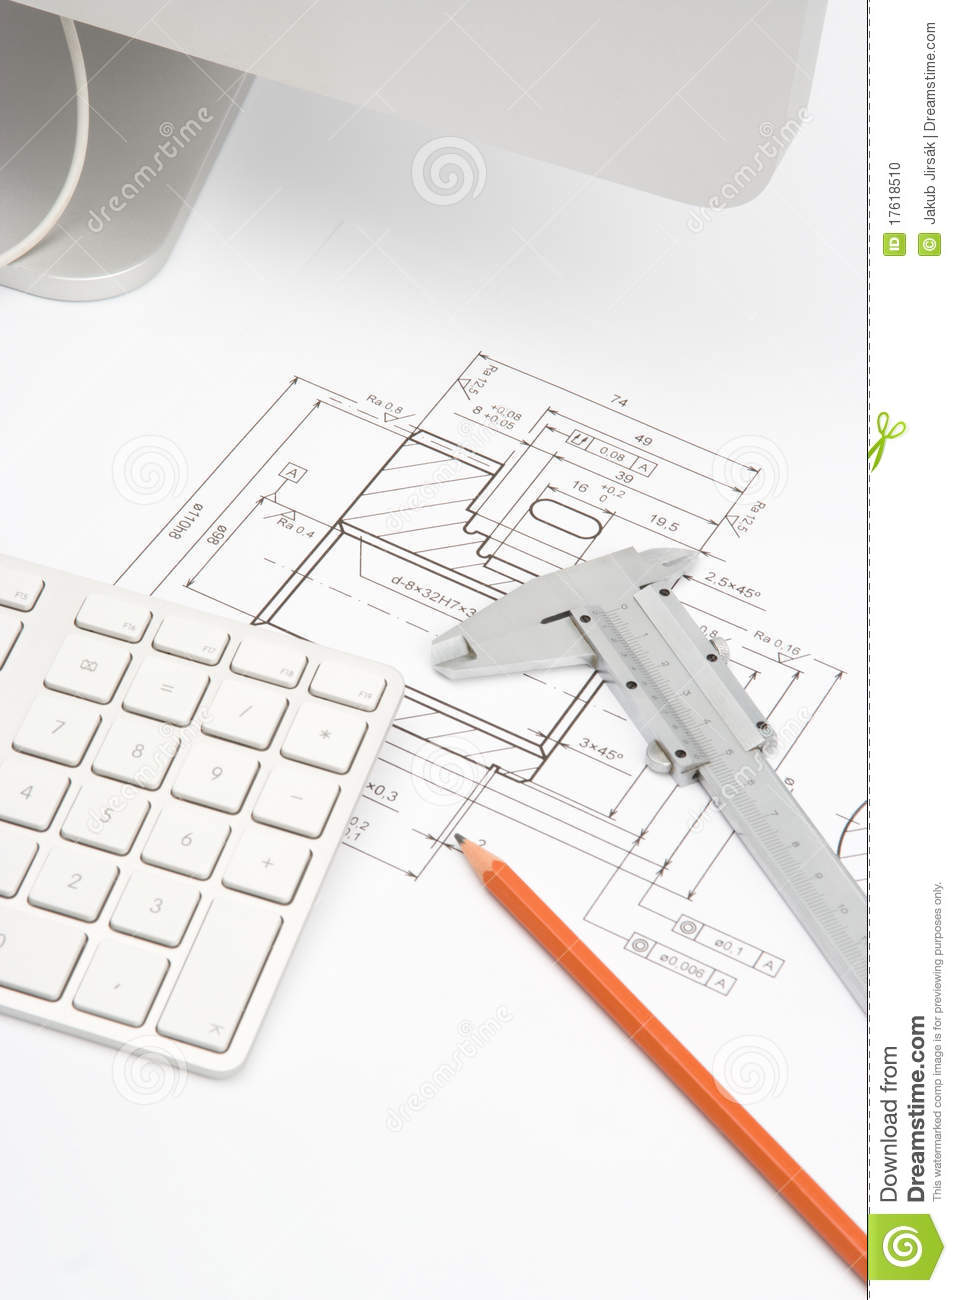 Engineering blueprints stock photo image 17618510 for Engineering blueprints